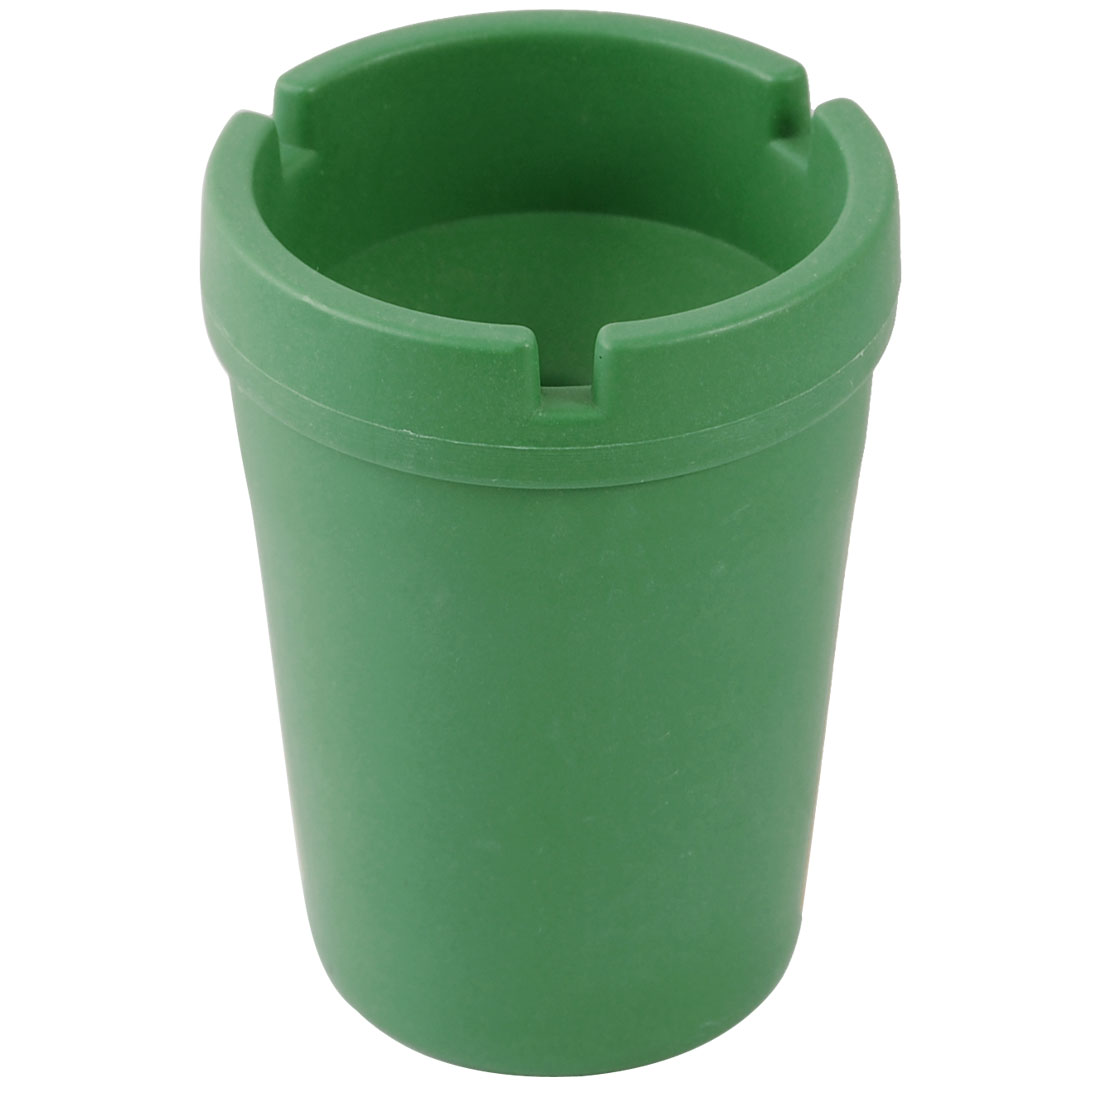 Green Plastic Jumbo Butt Bucket Cigarette Holder Car Ashtray